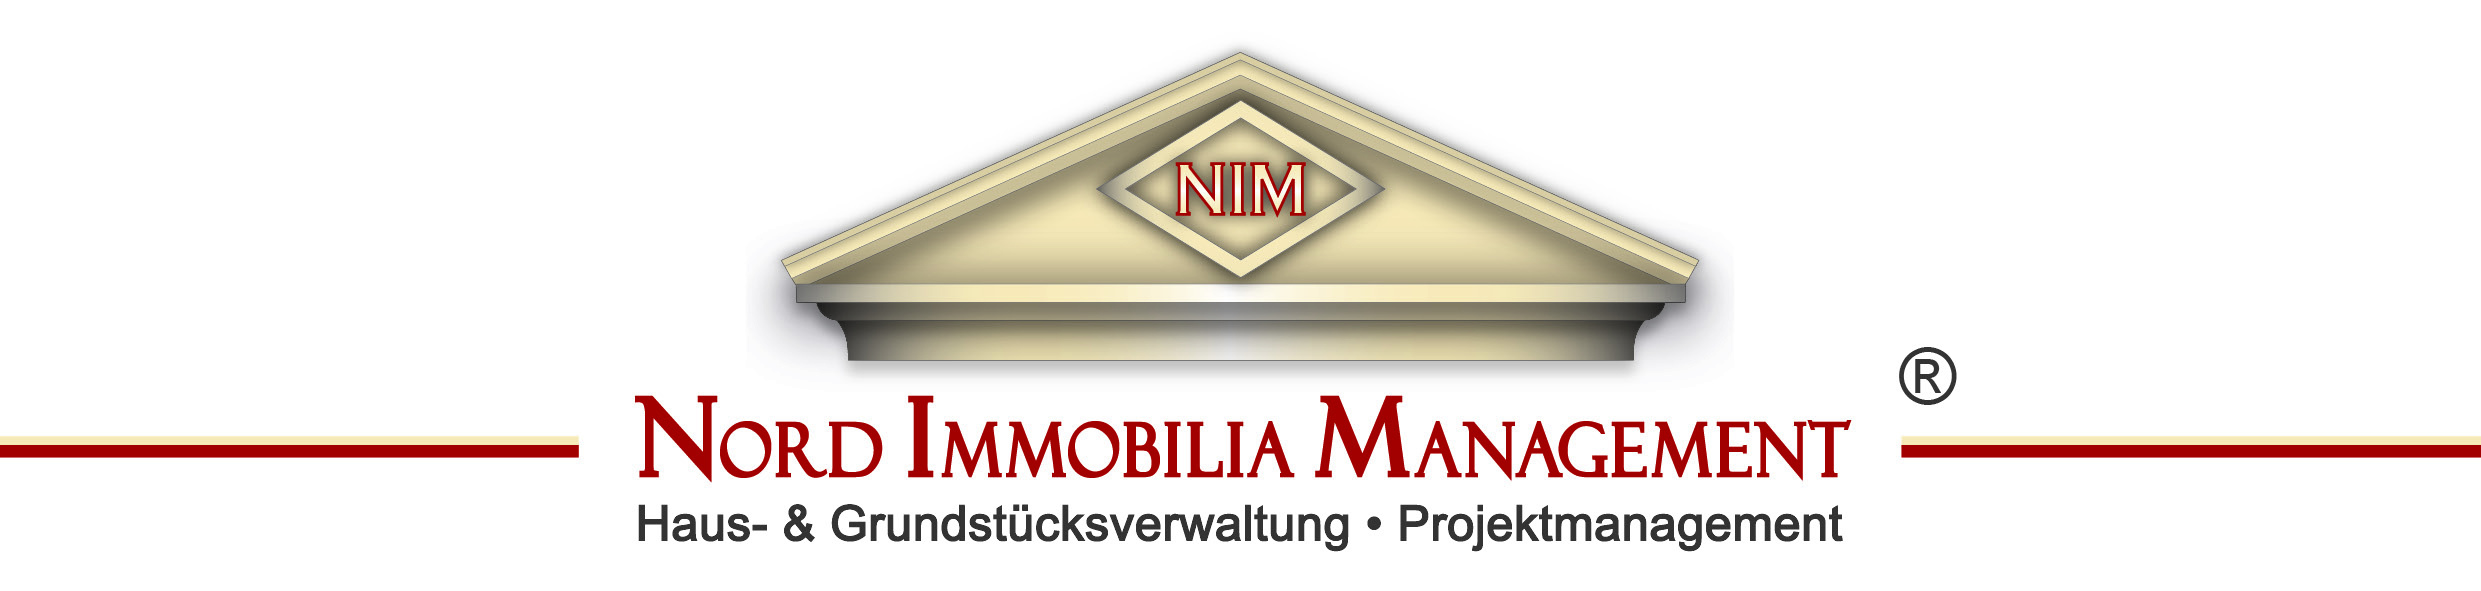 NIM Nord Immobilia Management GmbH & Co. KG